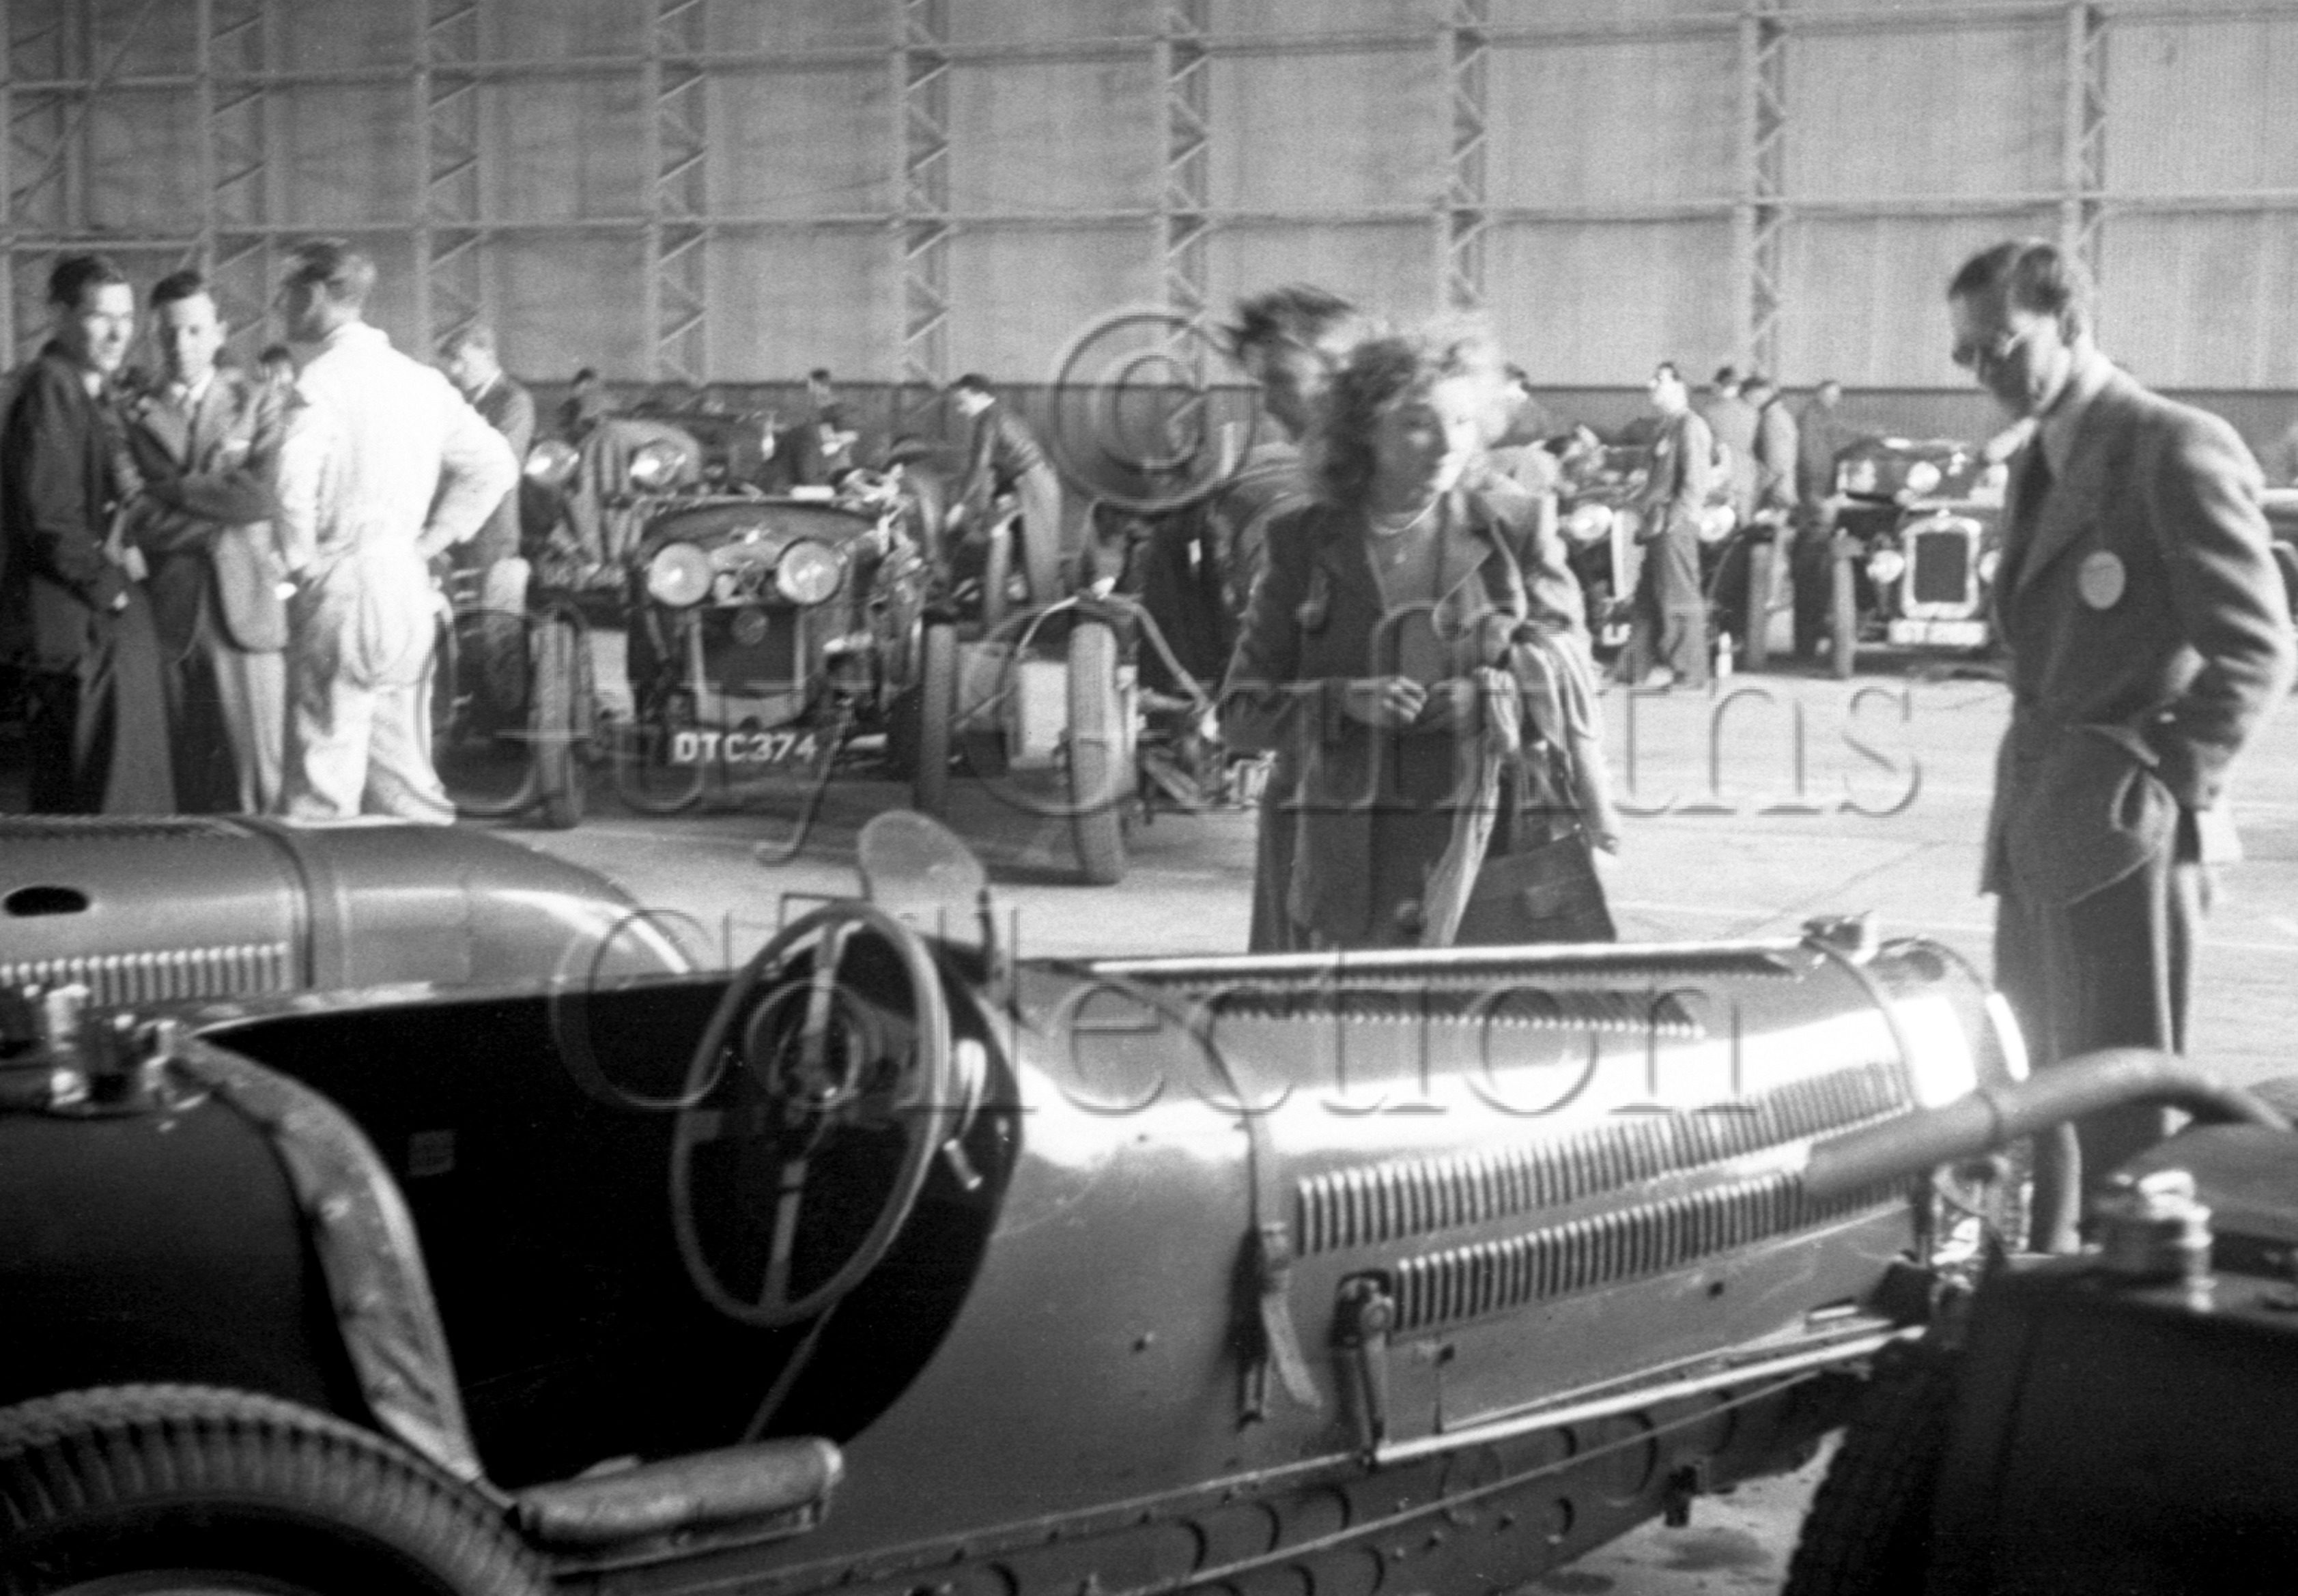 04-592–Bugatti–Gransden–Lodge–13-07-1947.jpg - The Guy Griffiths Collection